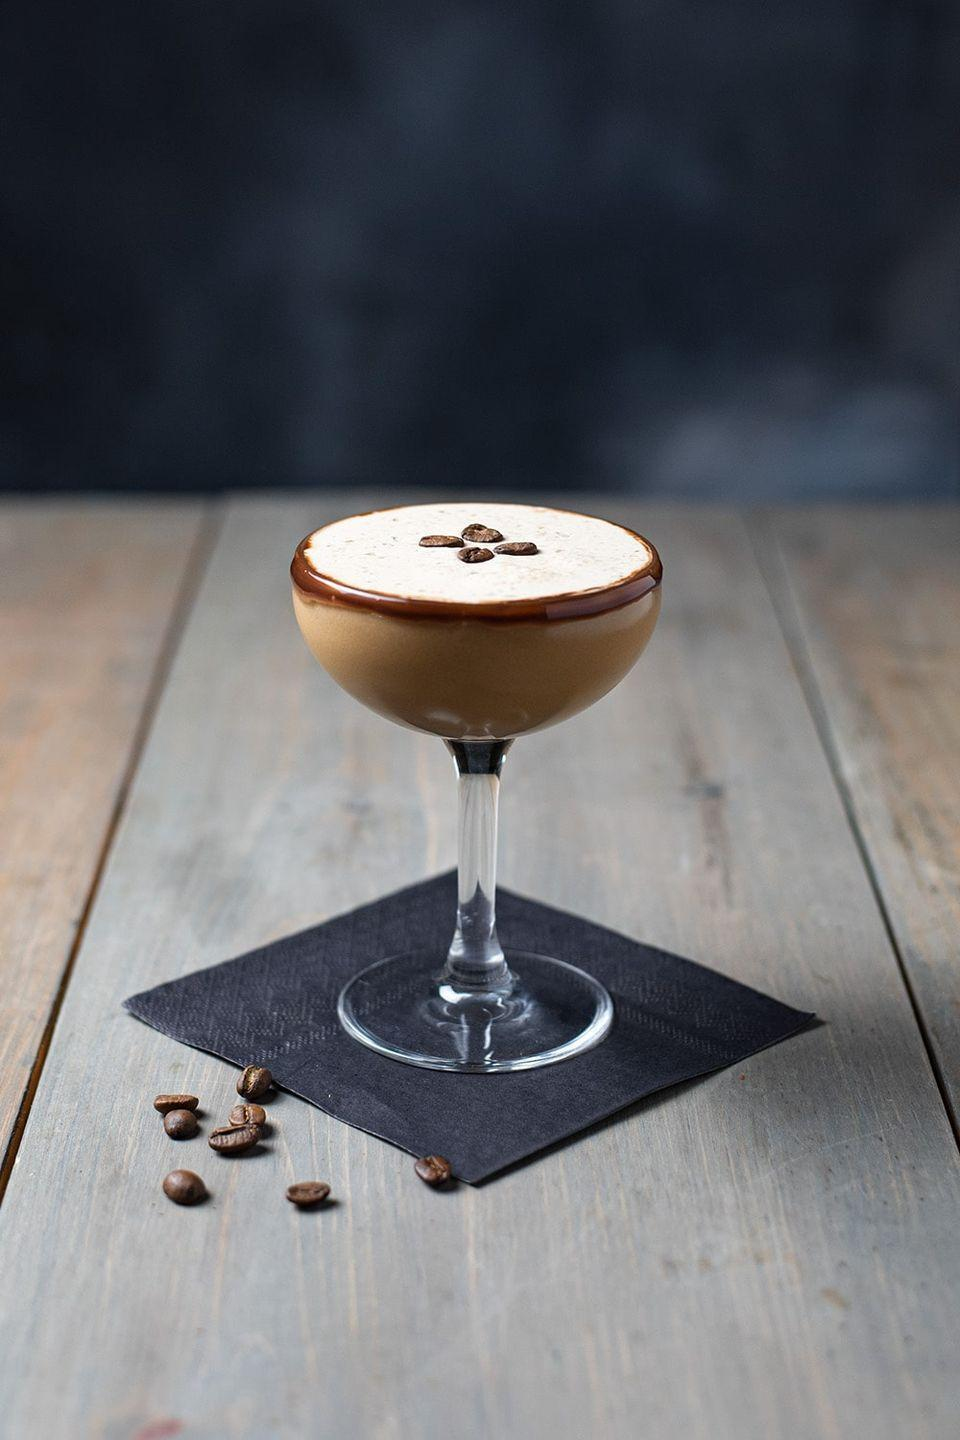 "<p>This sweet, simple dessert cocktail is for those of you who don't need a lot of excessive garnishes or fancy liqueurs—just a delicious sweet, creamy drink to celebrate Christmas with.</p><p><strong>Get the recipe at <a href=""https://kitchenswagger.com/chocolate-espresso-martini-recipe/"" rel=""nofollow noopener"" target=""_blank"" data-ylk=""slk:Kitchen Swagger"" class=""link rapid-noclick-resp"">Kitchen Swagger</a>.</strong><strong><br></strong></p>"